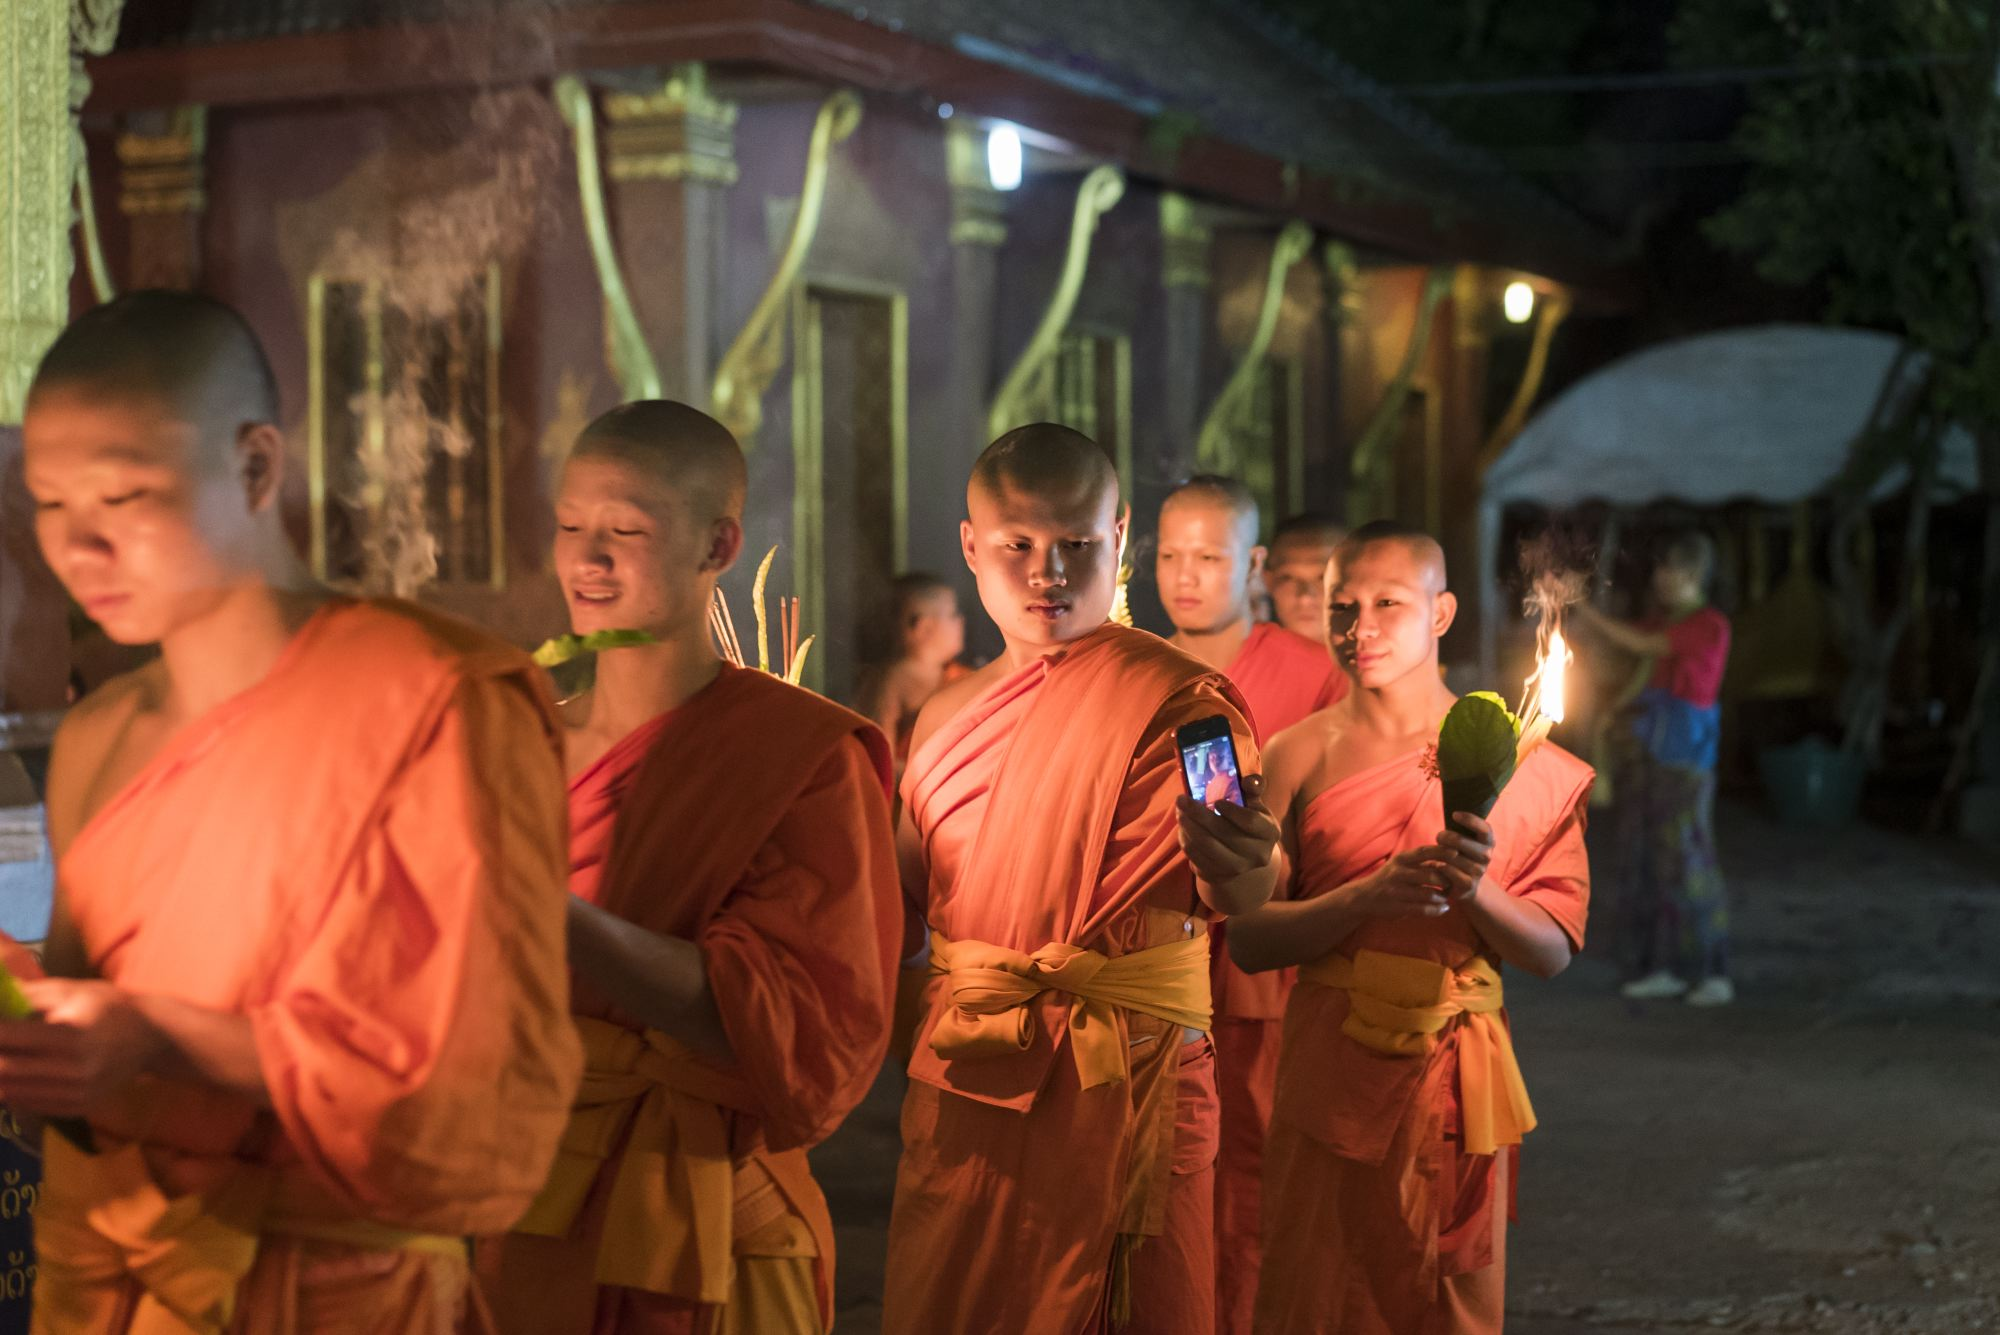 Luang Prabang, Laos photography, Ira Block, National Geographic